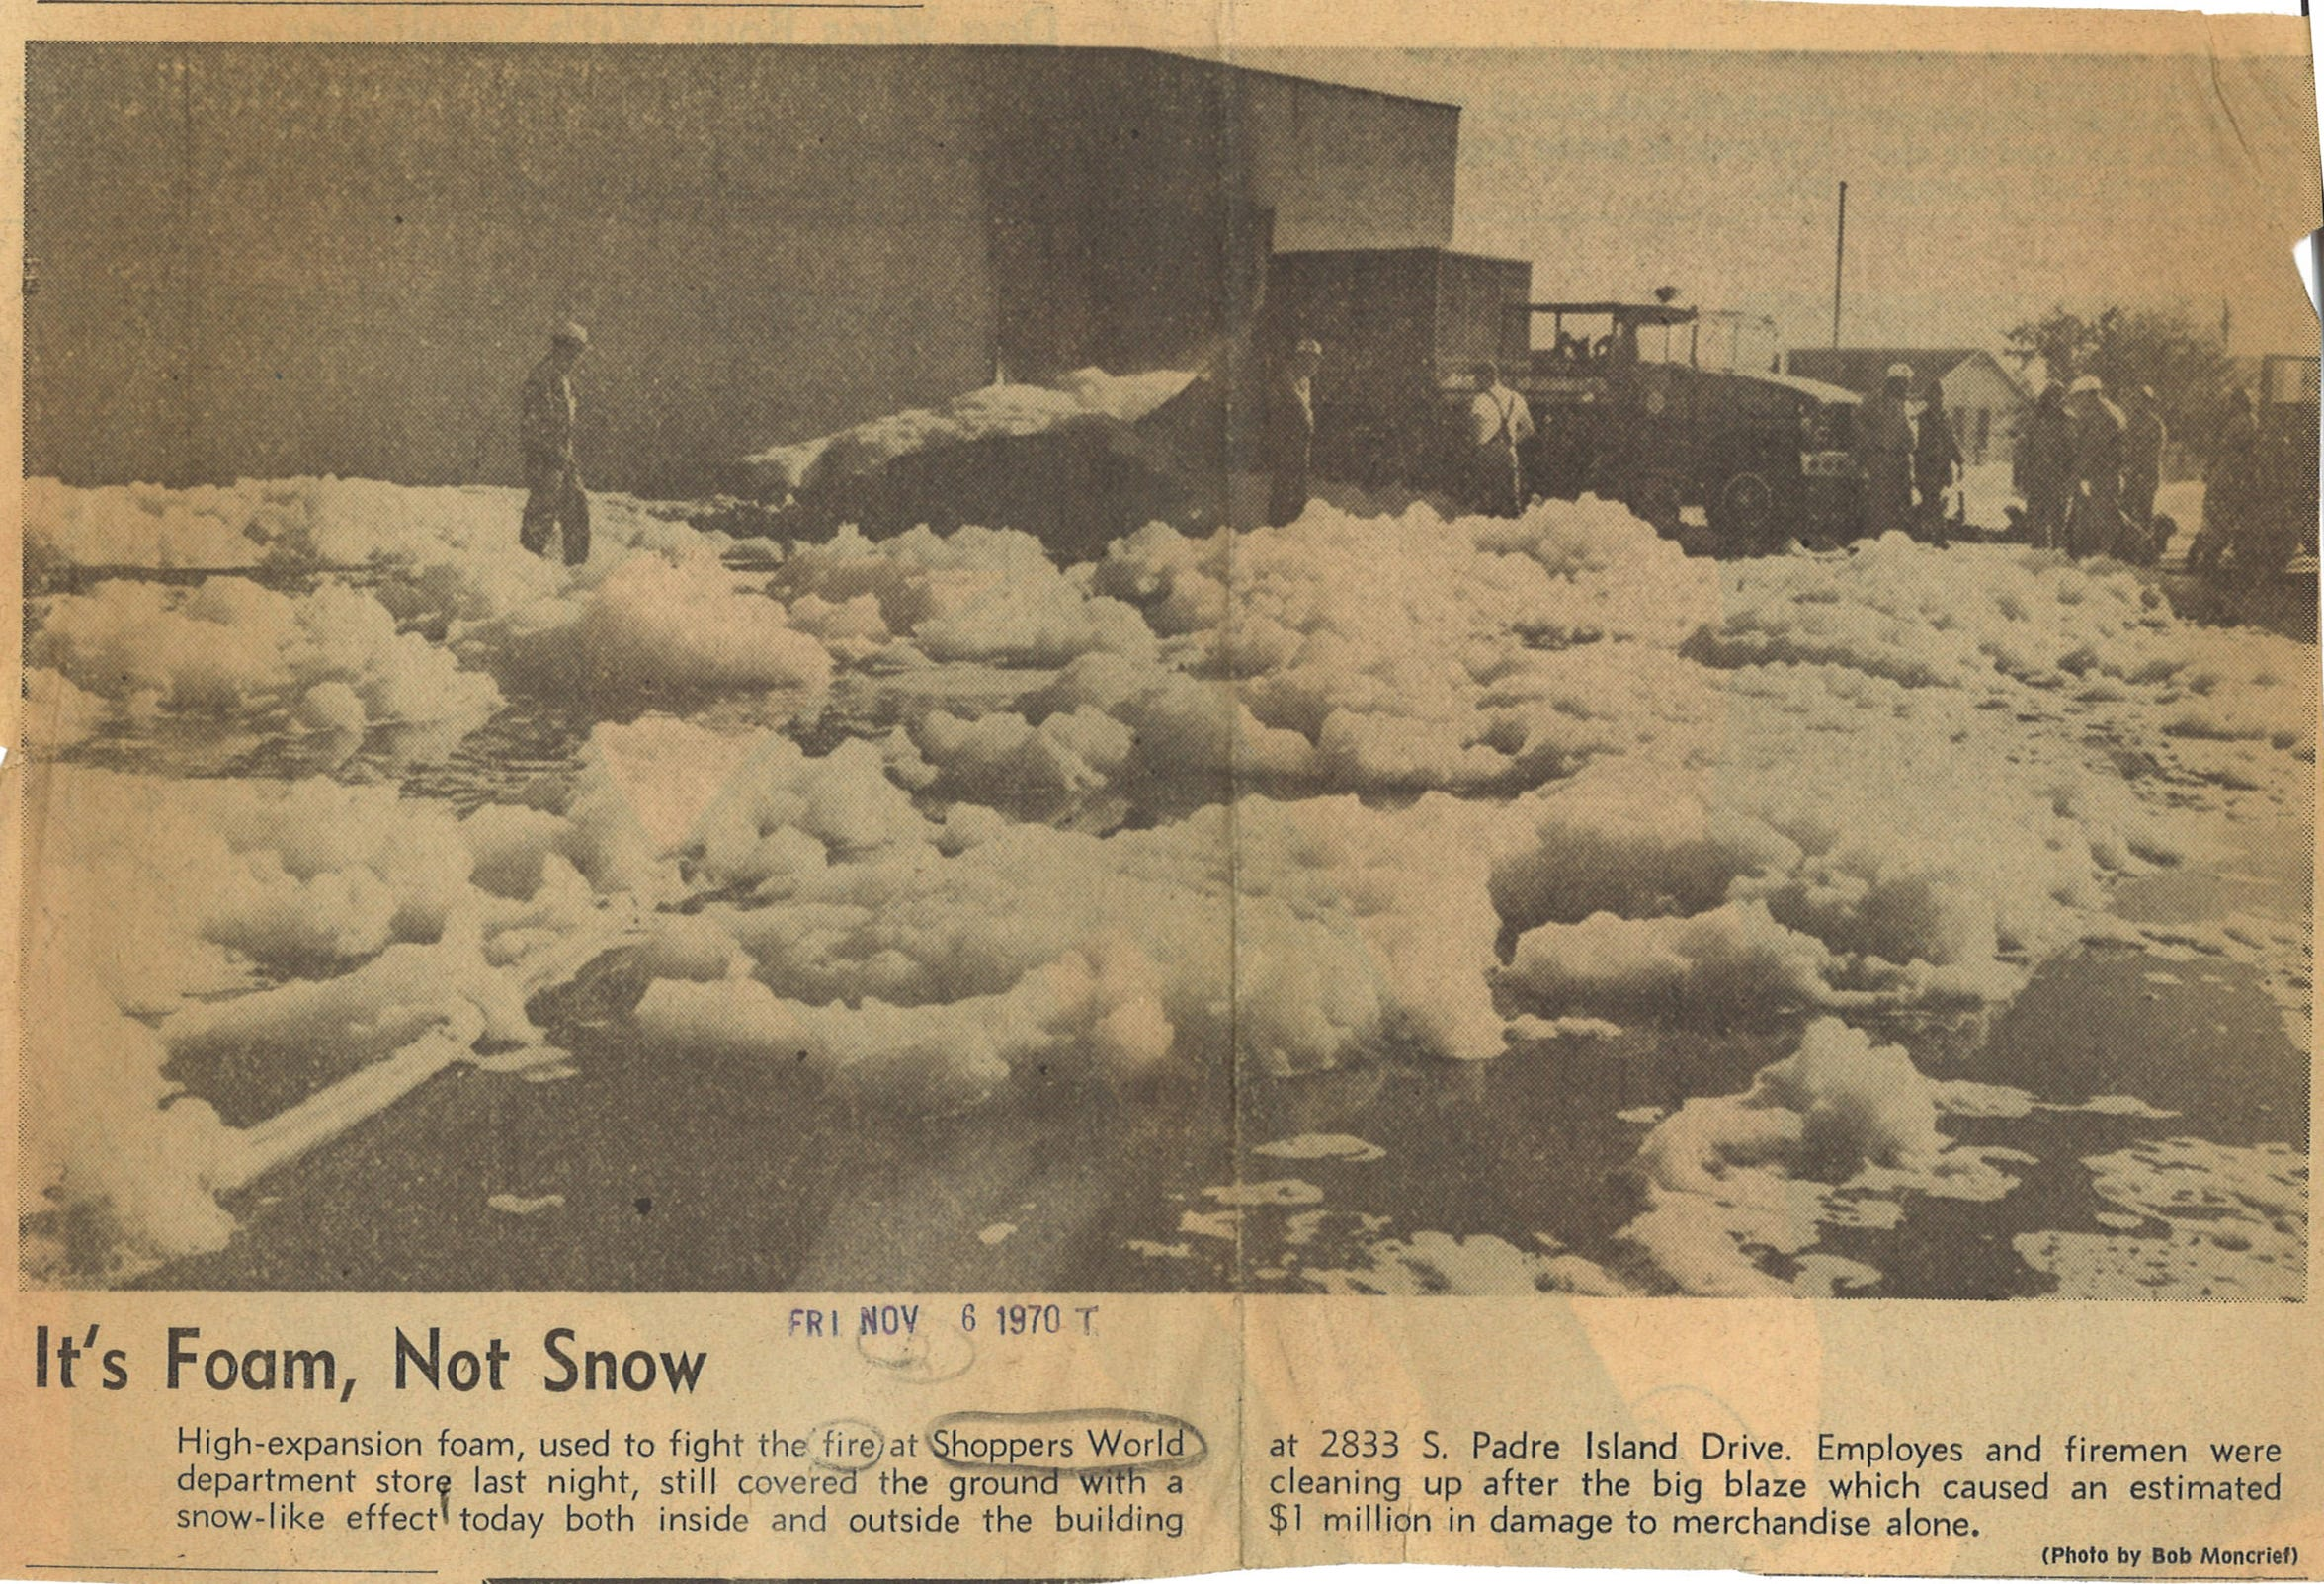 A large fire at Shopppers World on SPID caused an estimated $1 million in damages on Nov. 5, 1970.